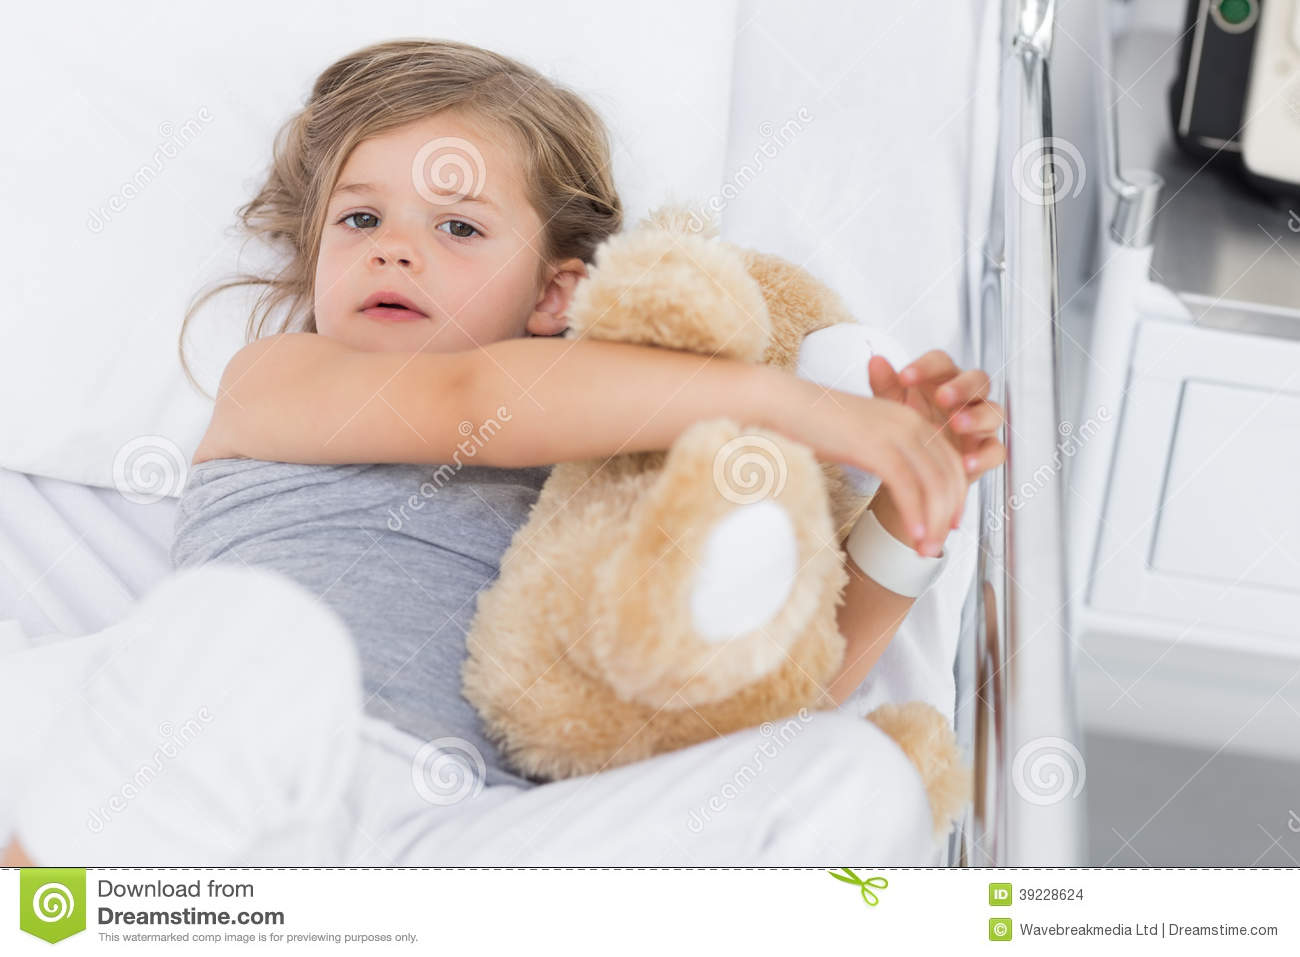 Cute girl hugging teddy bear in hospital bed Stock Images